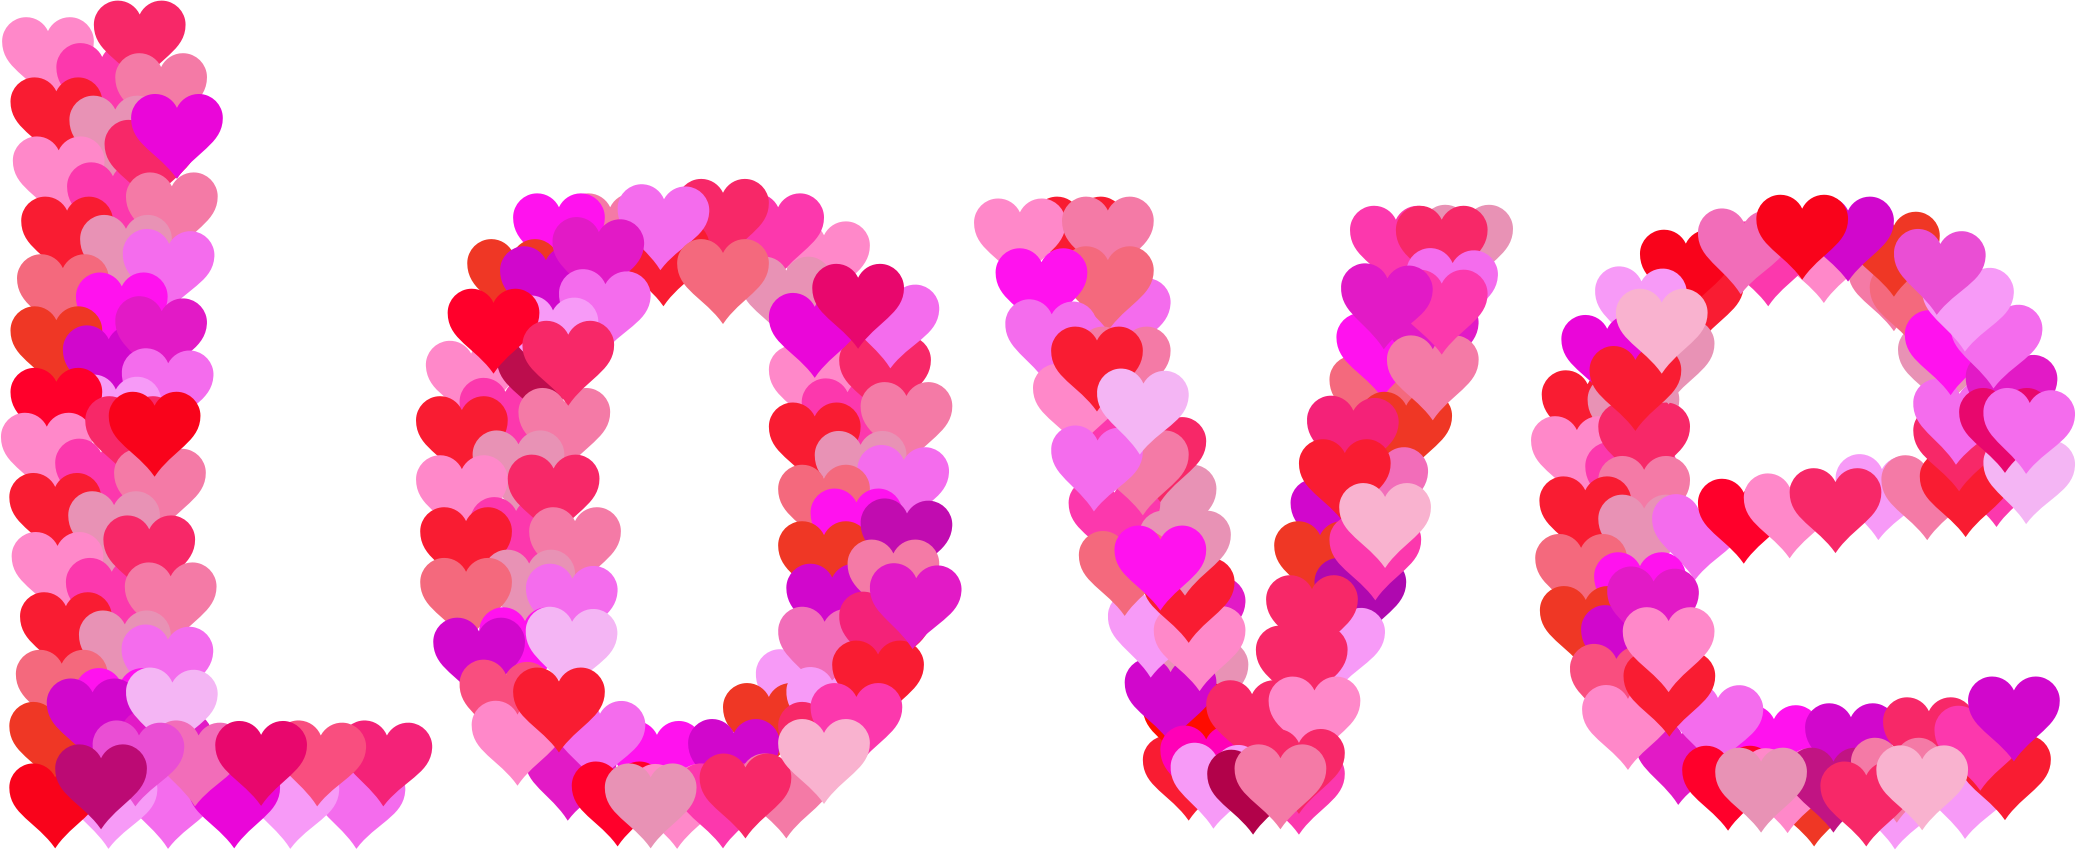 Free heart clipart for mac banner royalty free library Love Heart Image (64+) banner royalty free library